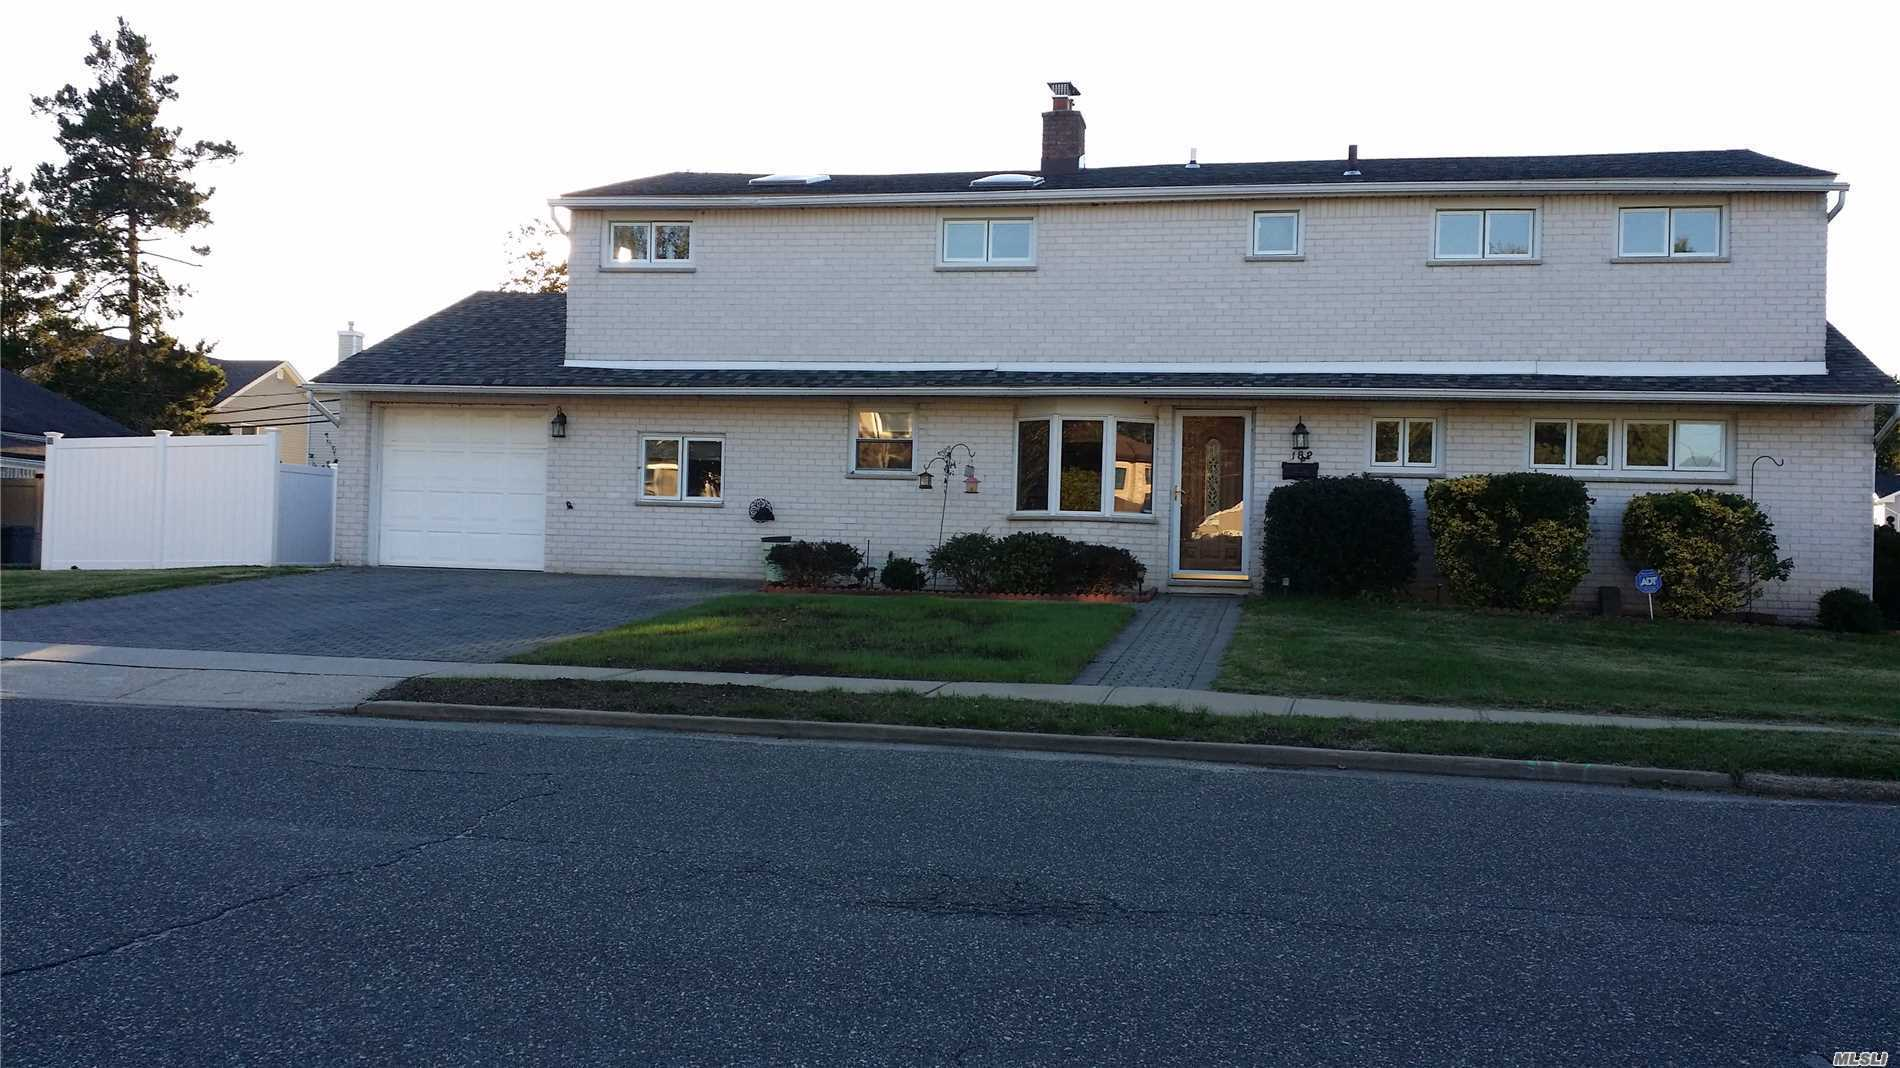 Beautiful Colonial With A 3 Bedroom And 2500 Sq Ft Of Luxury Living Space. Hardwood Floor And 3 Skylights, Updated Kitchen With New Stainless Steel Refrigerator And New Electric Range . New Washer And New Dryer, New Tank Water Heater, New Roof And New Baseboards For The 2 Upstairs Bedrooms, Fenced Backyard .Minutes To Highway. Train And Highly Desirable Syosset School District.